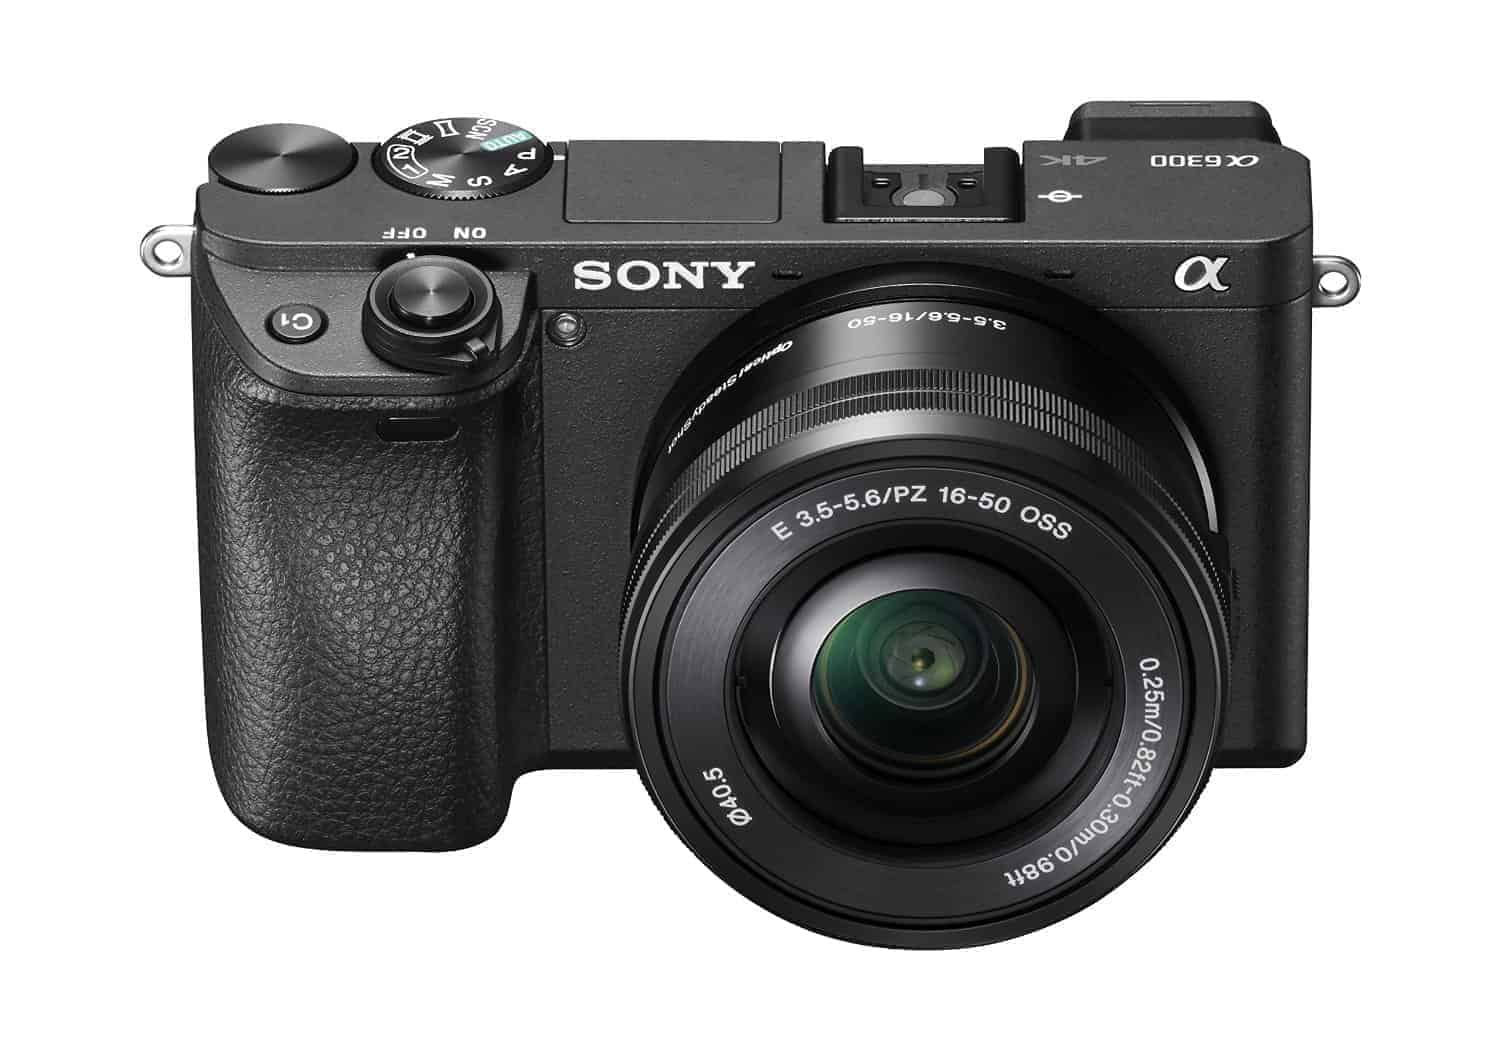 Camera Top 10 Best Dslr Cameras camera buying guide top 10 best dslr mirrorless cameras for sony alpha a6300 digital with 16 50mm lens